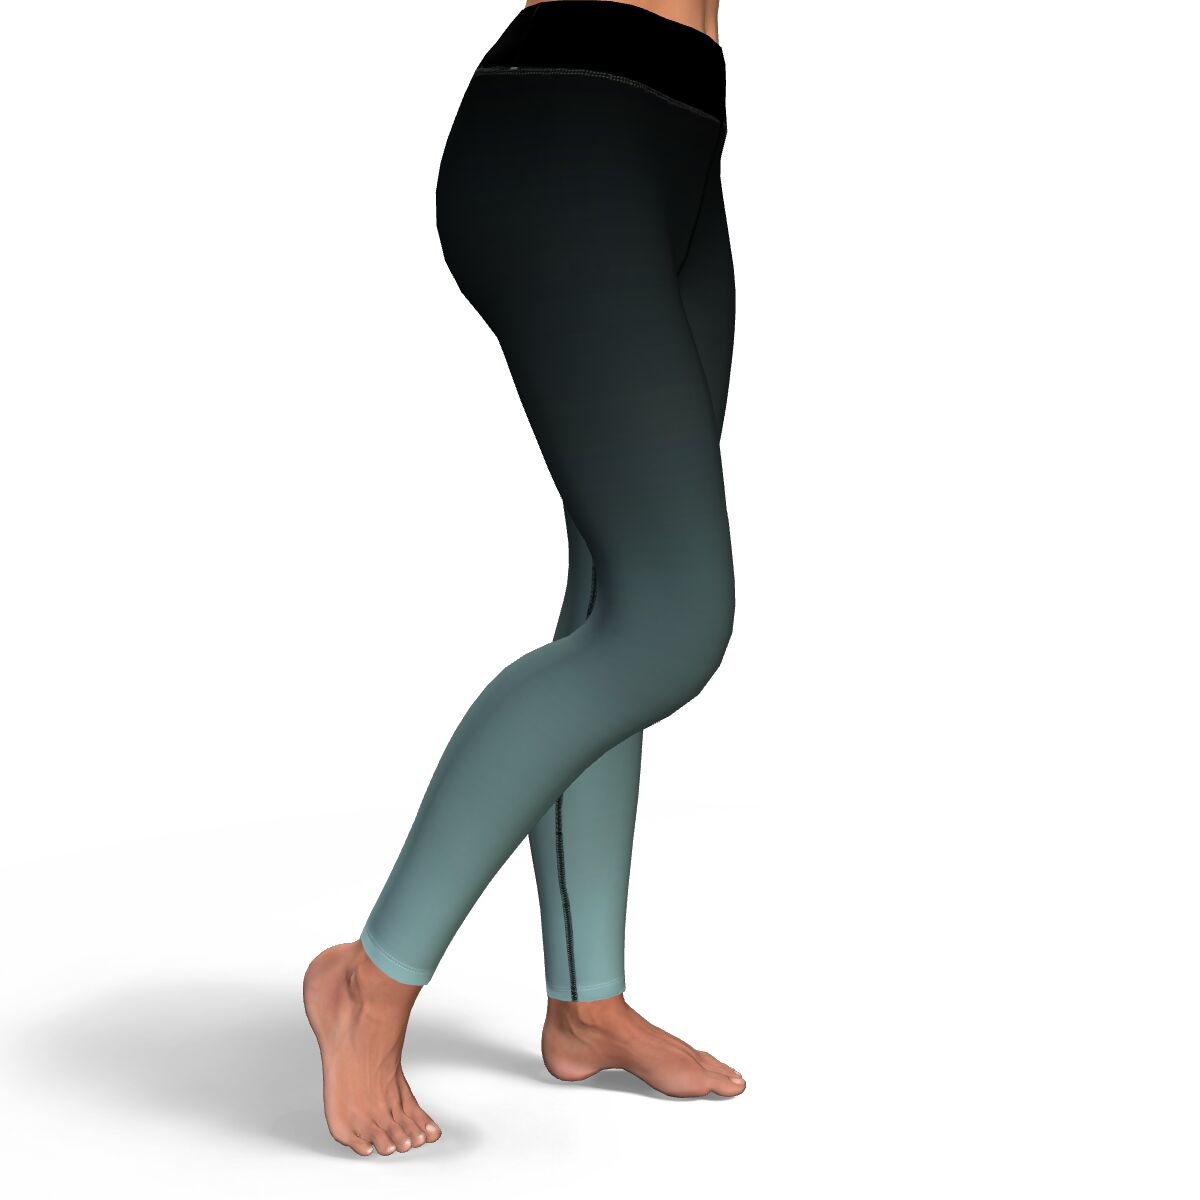 Black to Turquoise Ombre Yoga Pants